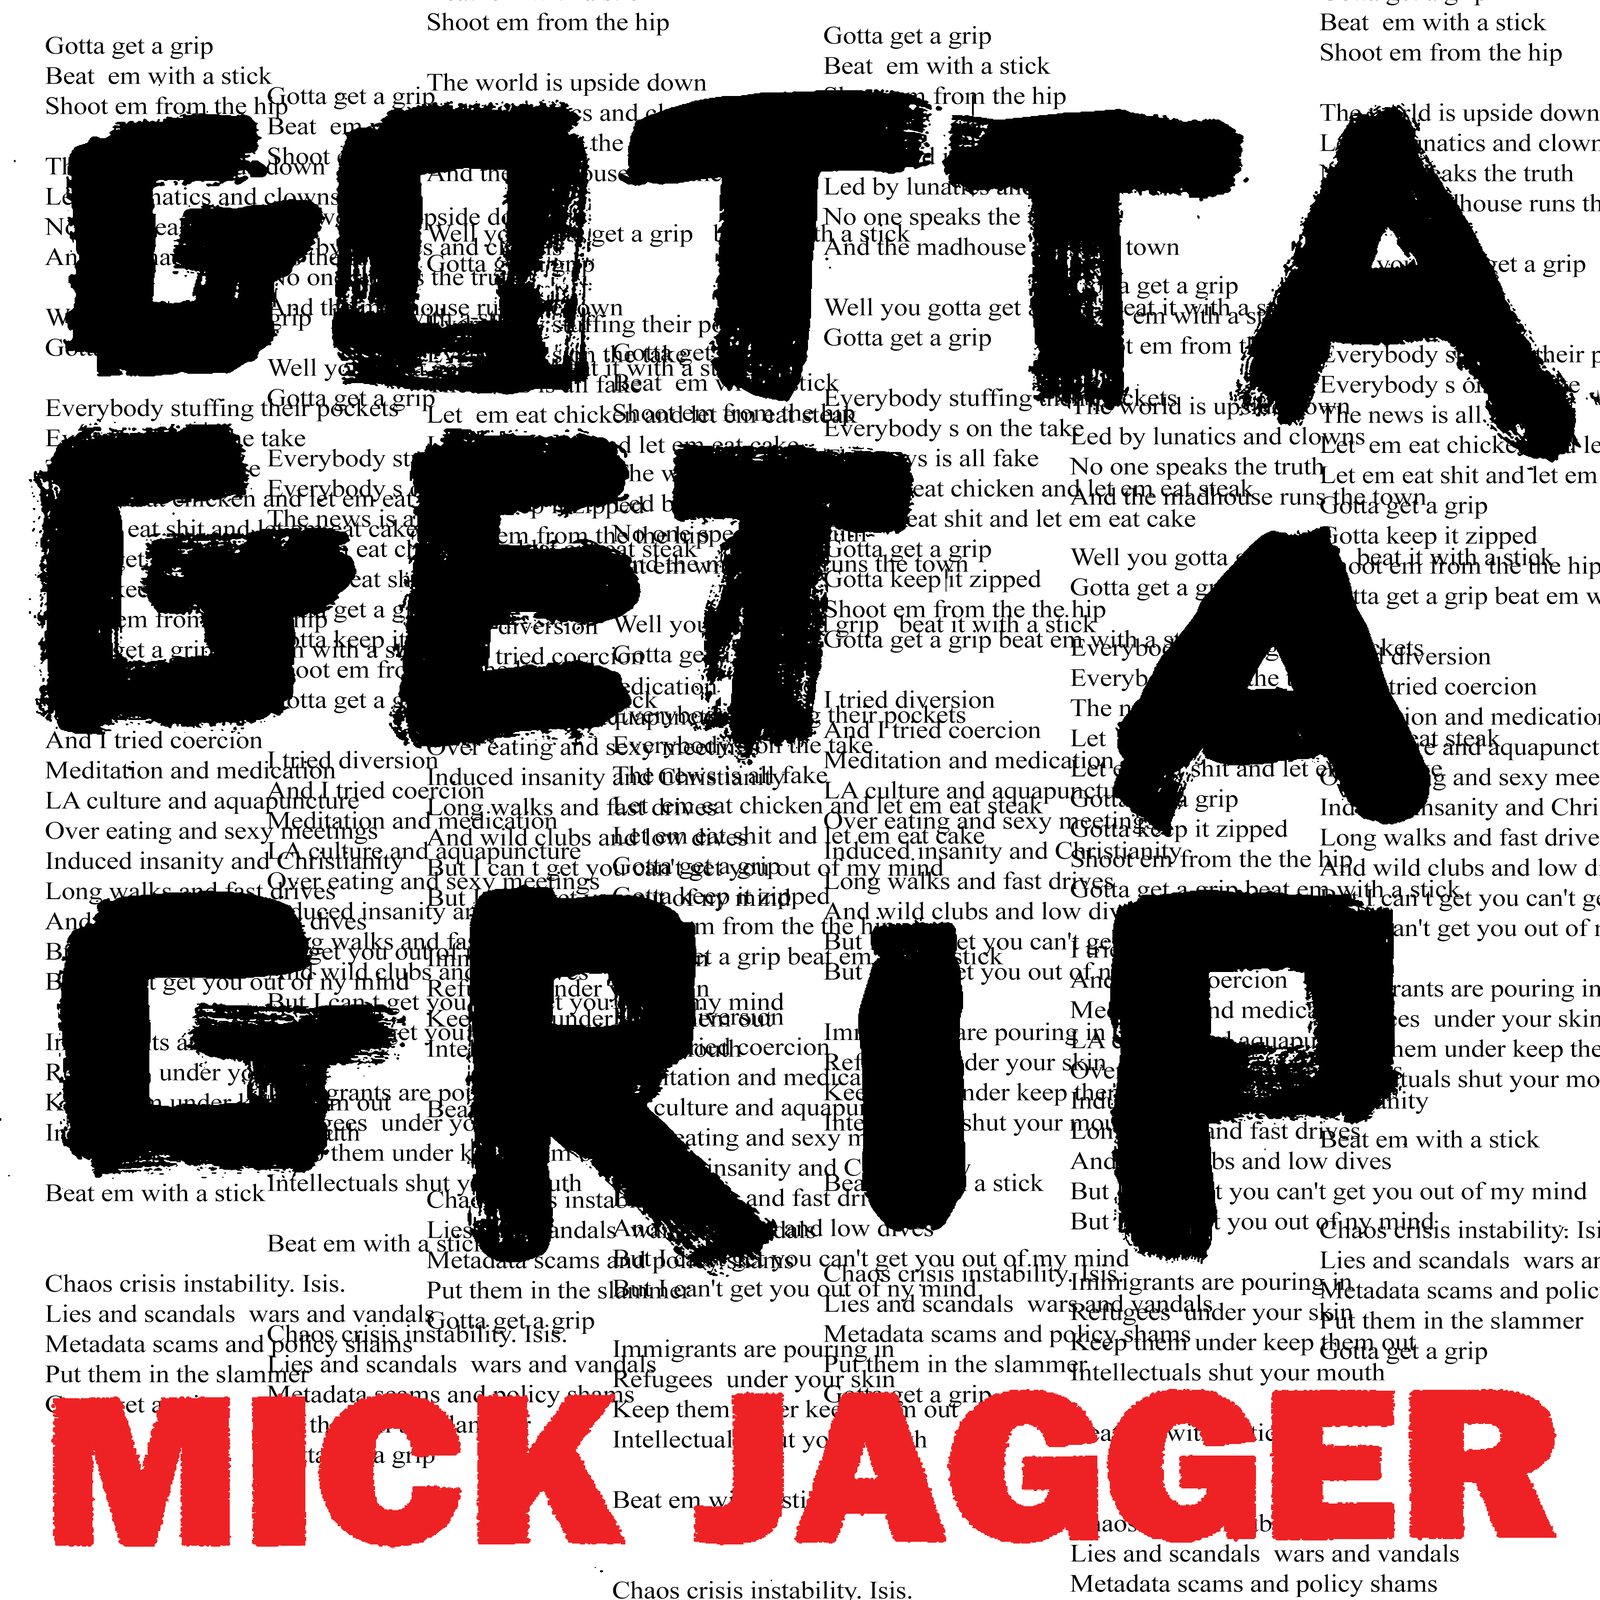 Gotta Get A Grip / England Lost by Mick Jagger image